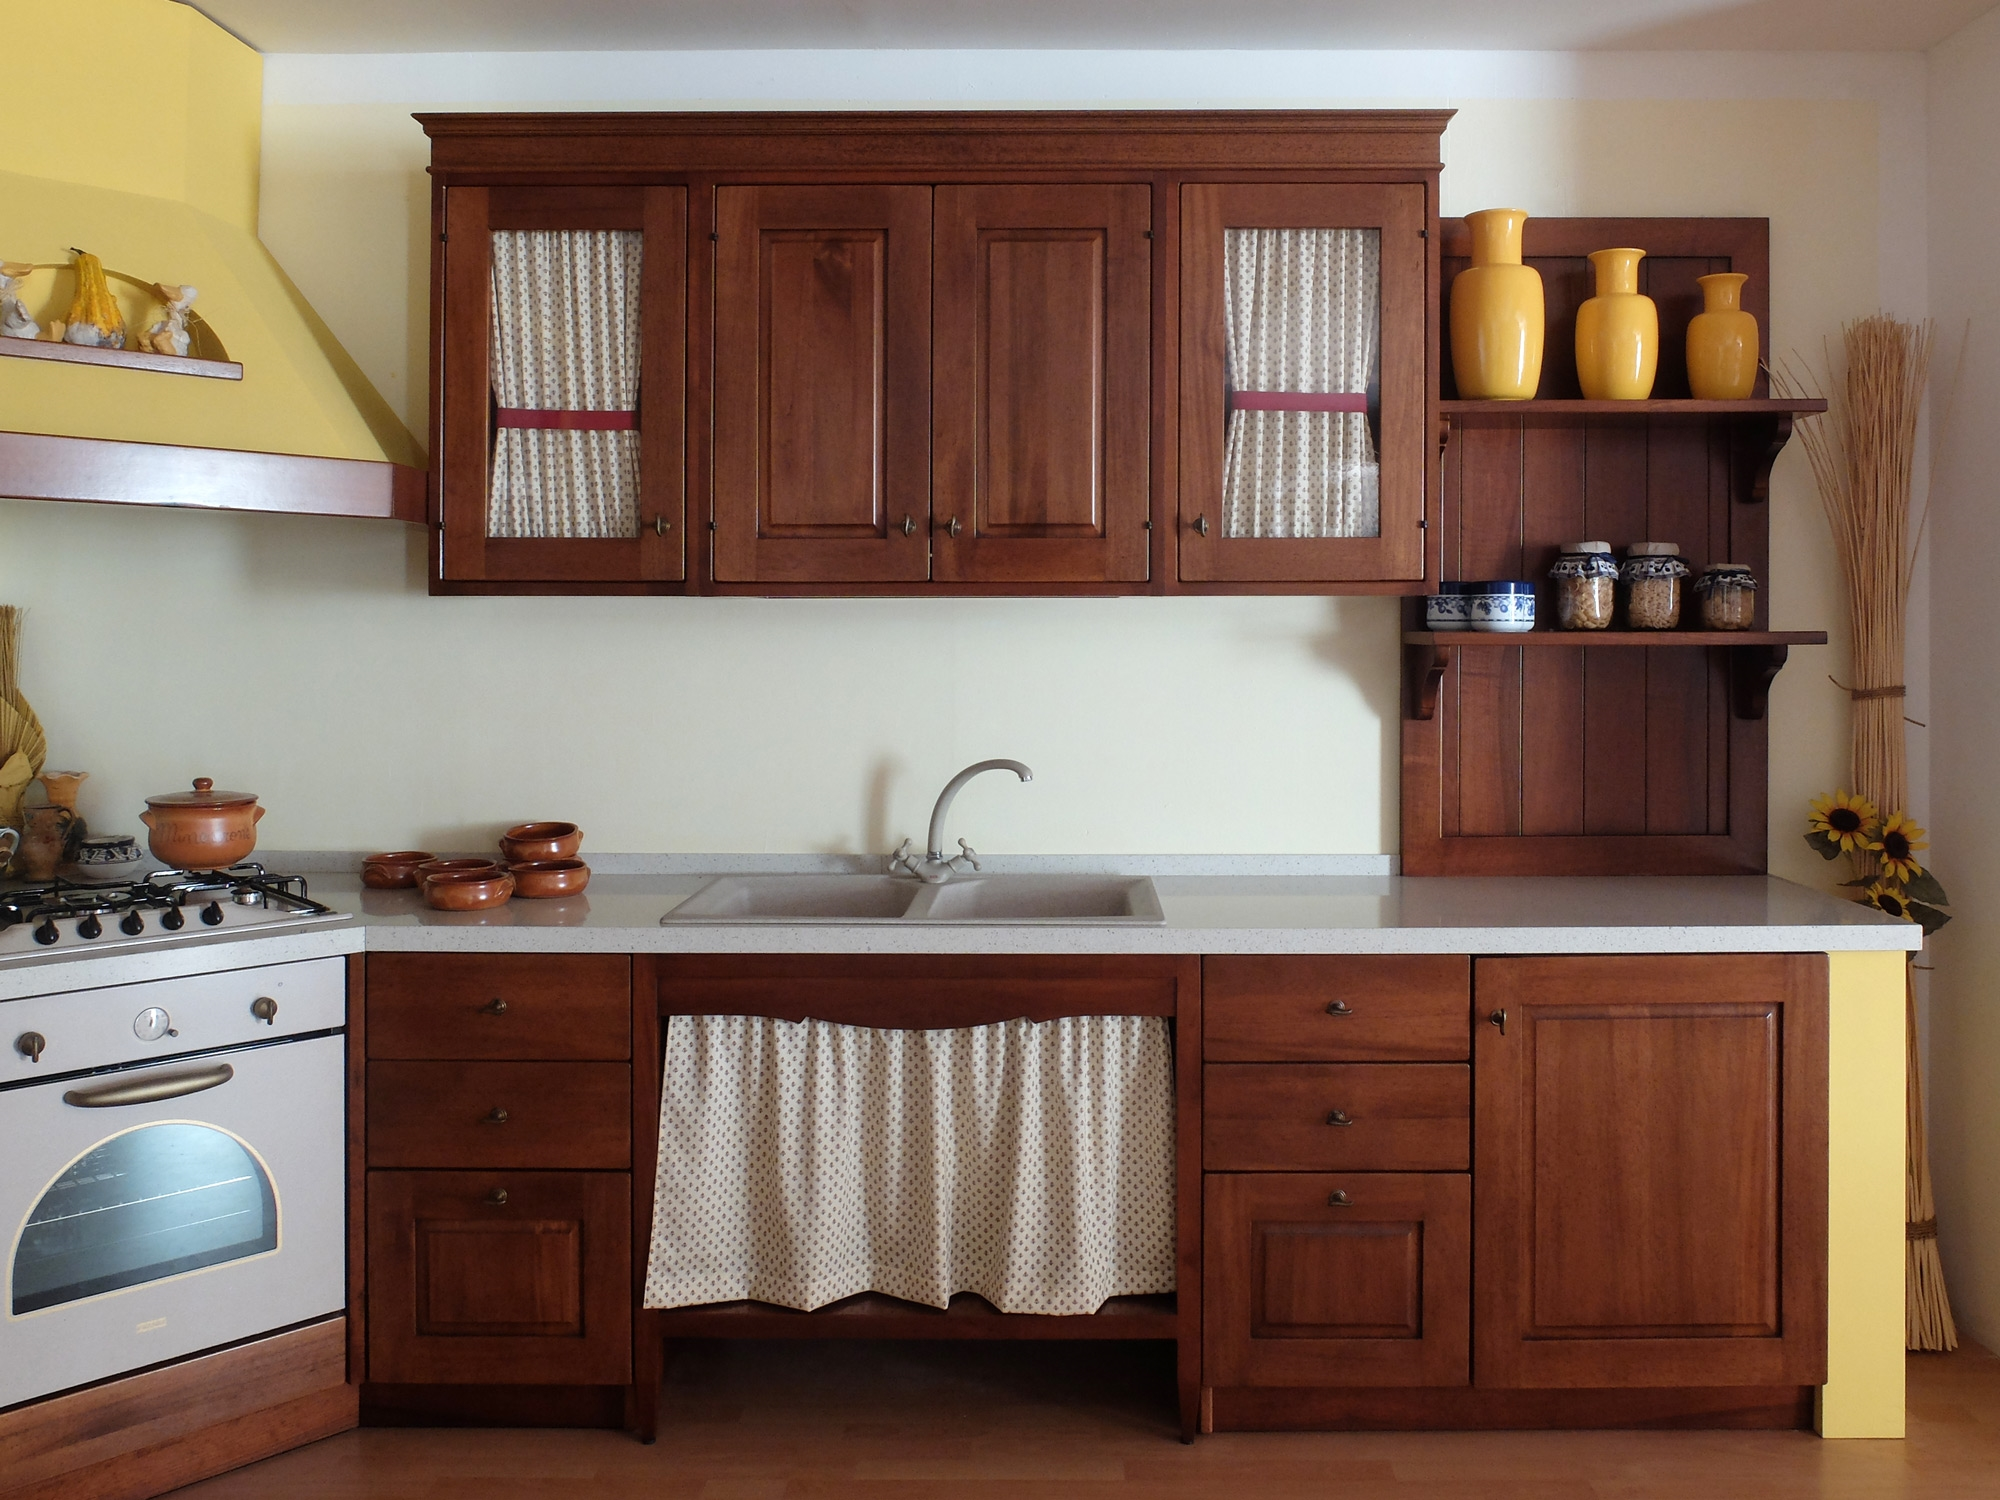 Beautiful Tendine Per Cucina In Muratura Pictures - Skilifts.us ...